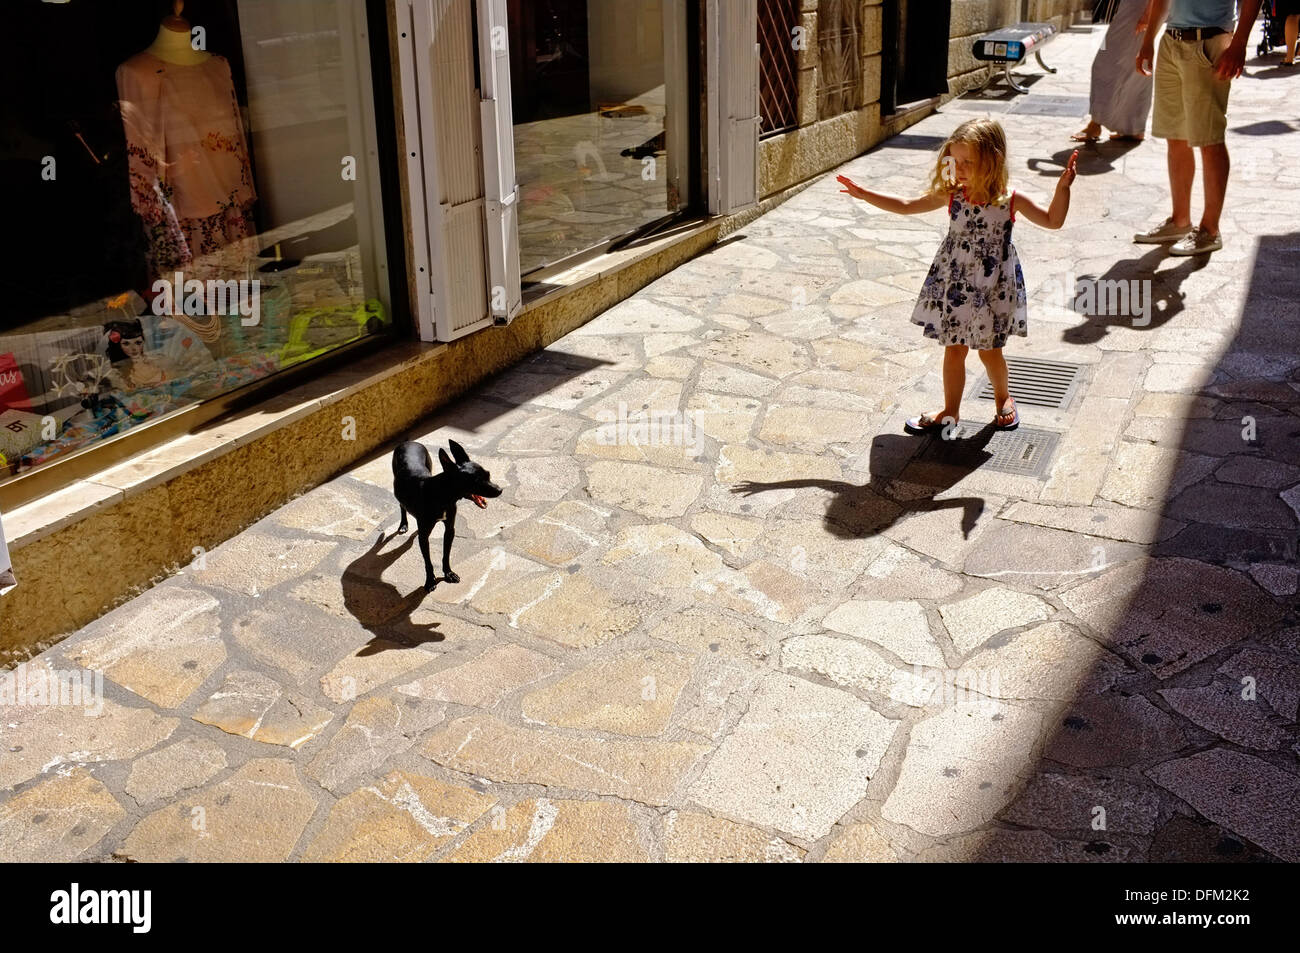 Girl watching dog in street, Palma, Mallorca - Stock Image